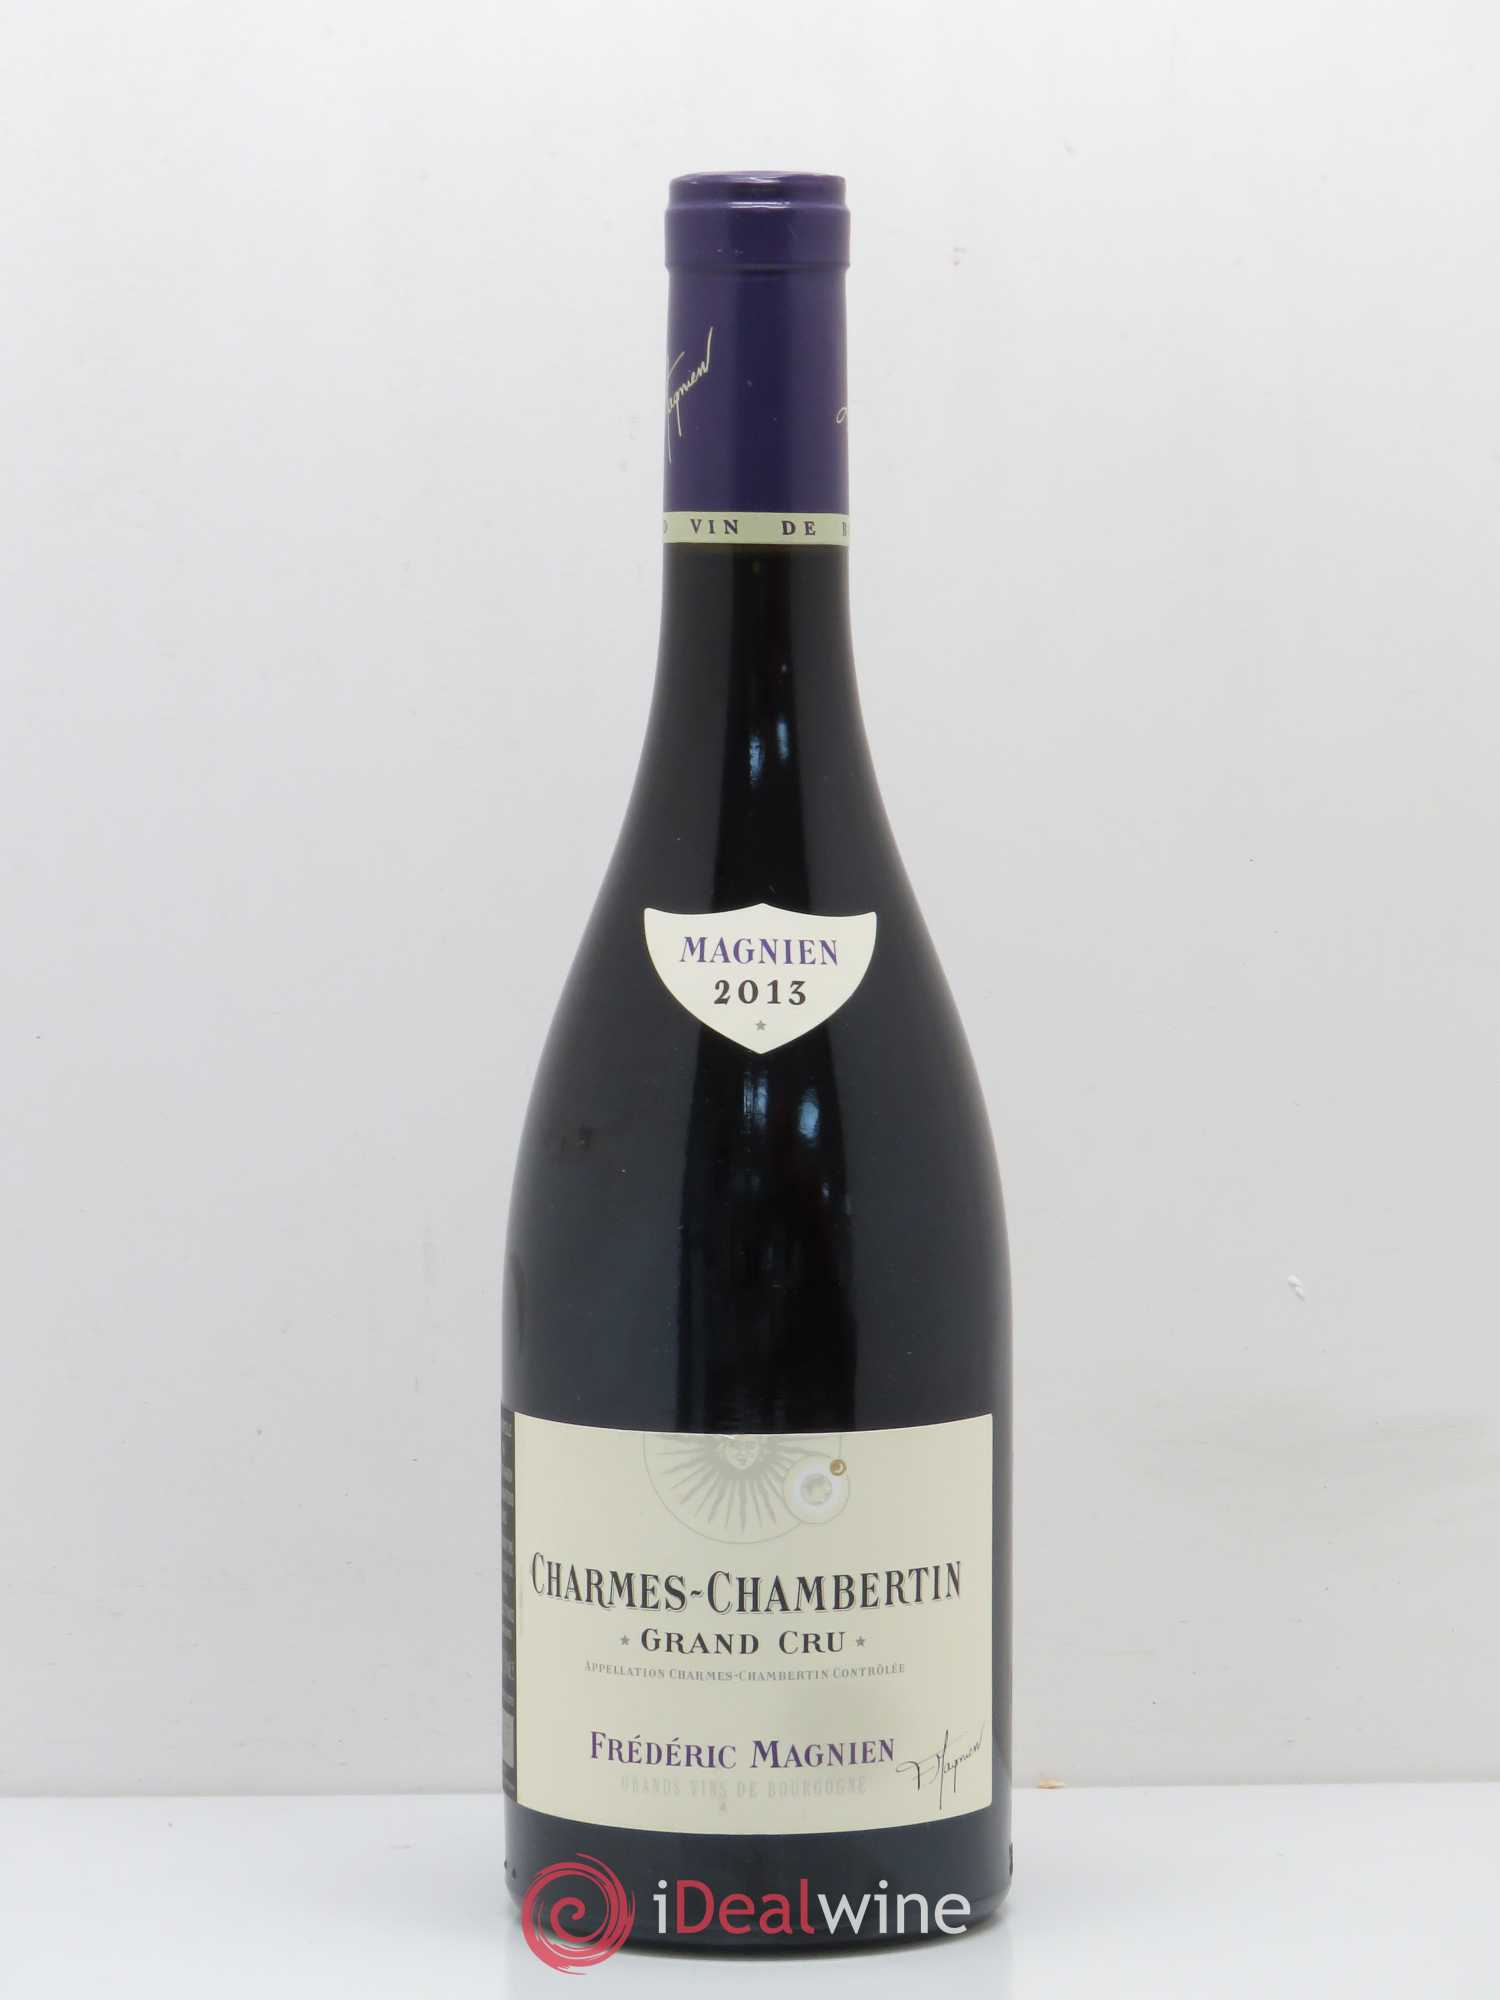 Charmes-Chambertin Grand Cru Frédéric Magnien (Domaine)  2013 - Lot of 1 Bottle